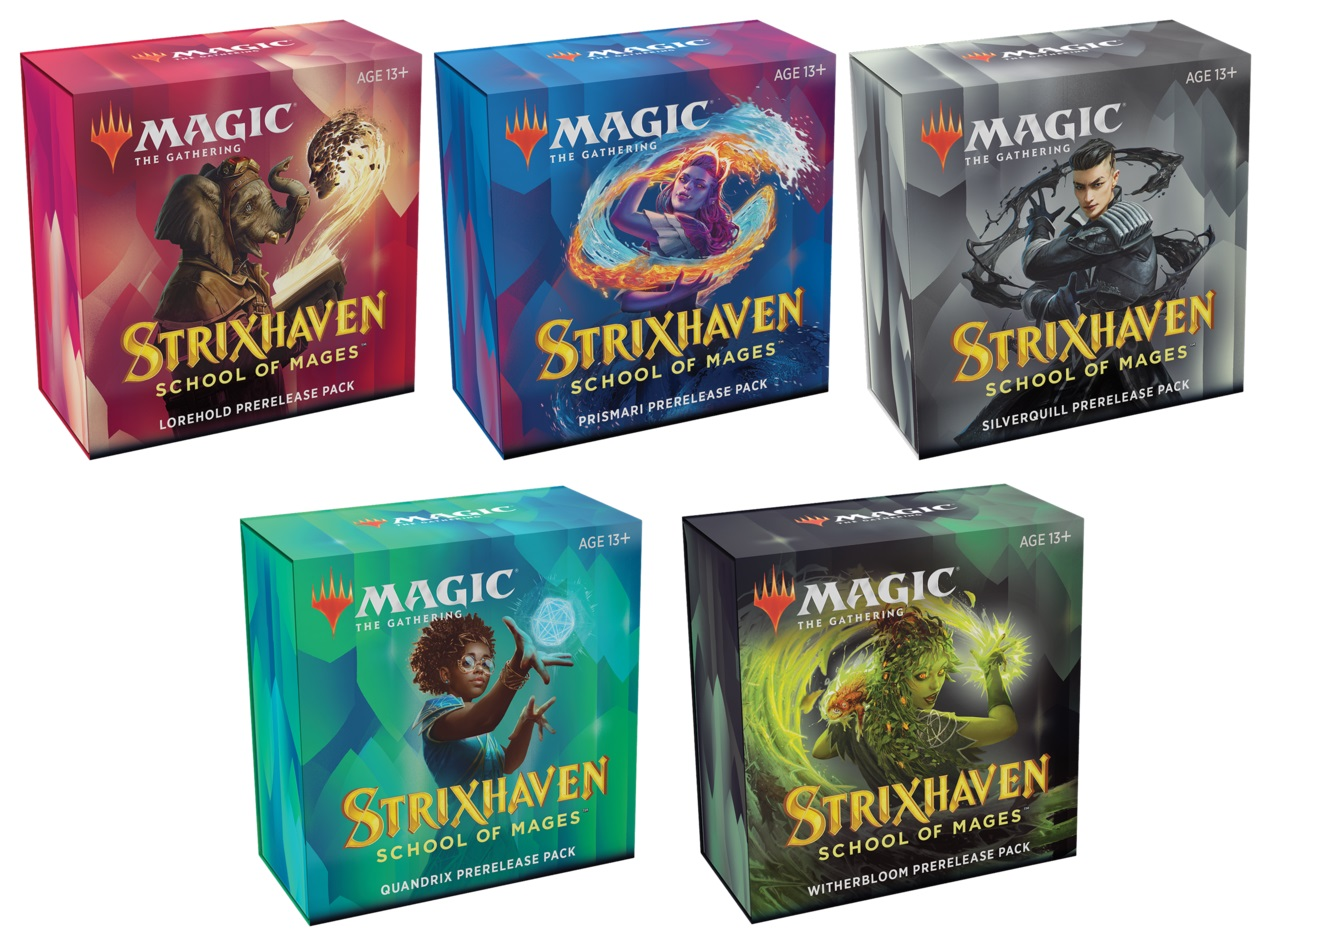 Strixhaven: School of Mages - Prerelease Pack Set of 5